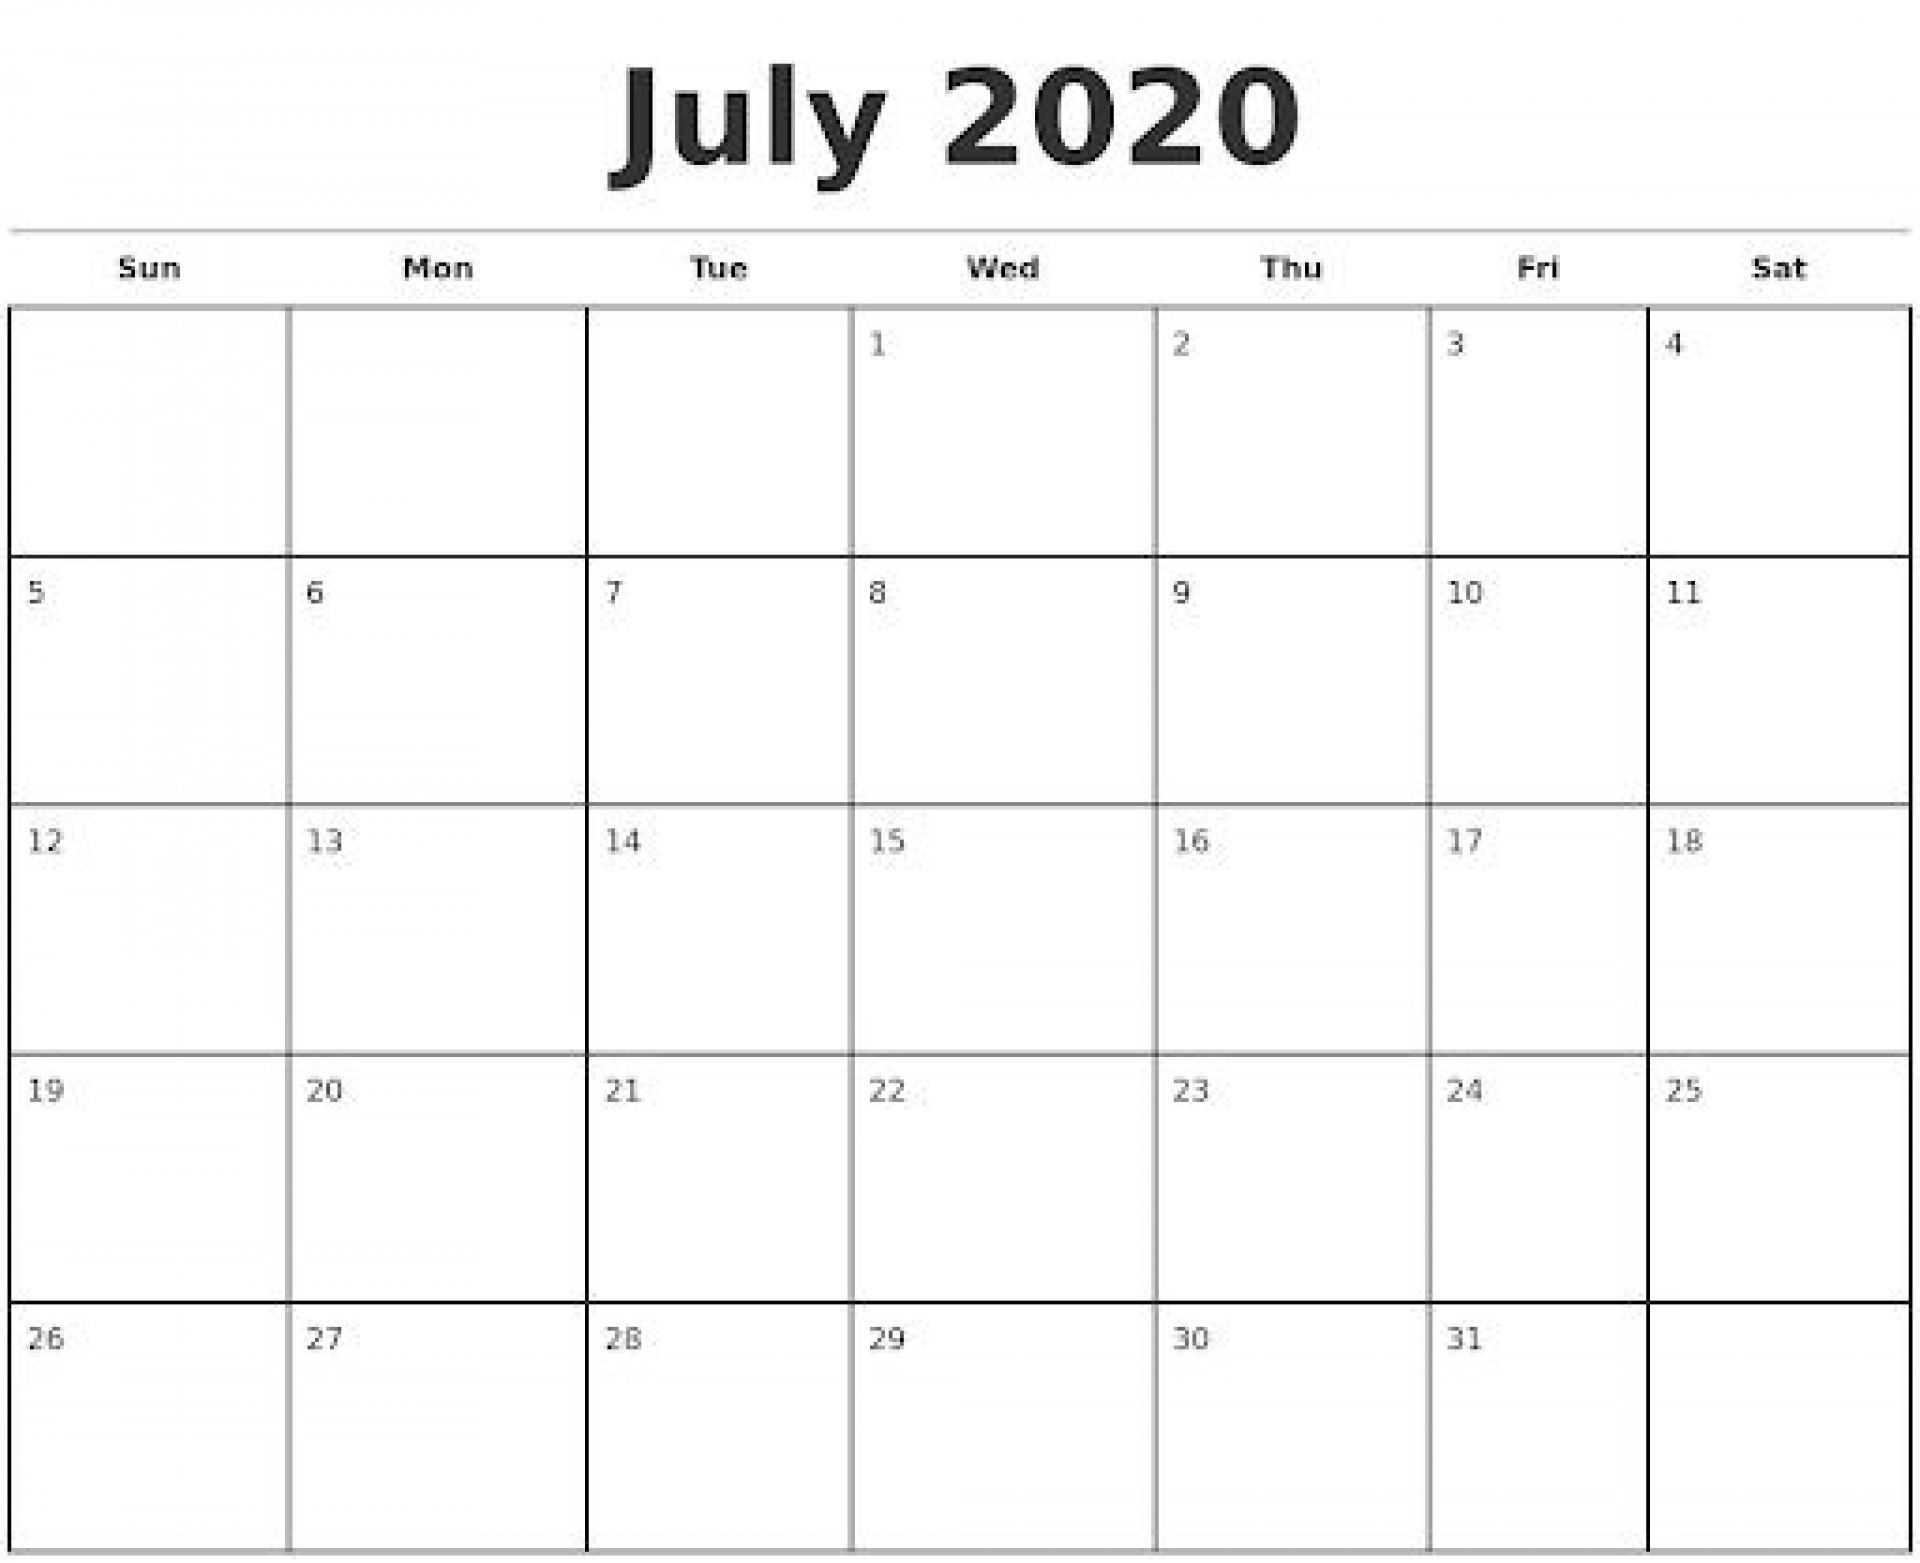 009 Impressive Monthly Calendar Template 2020 Image  Editable Free Word Excel May1920